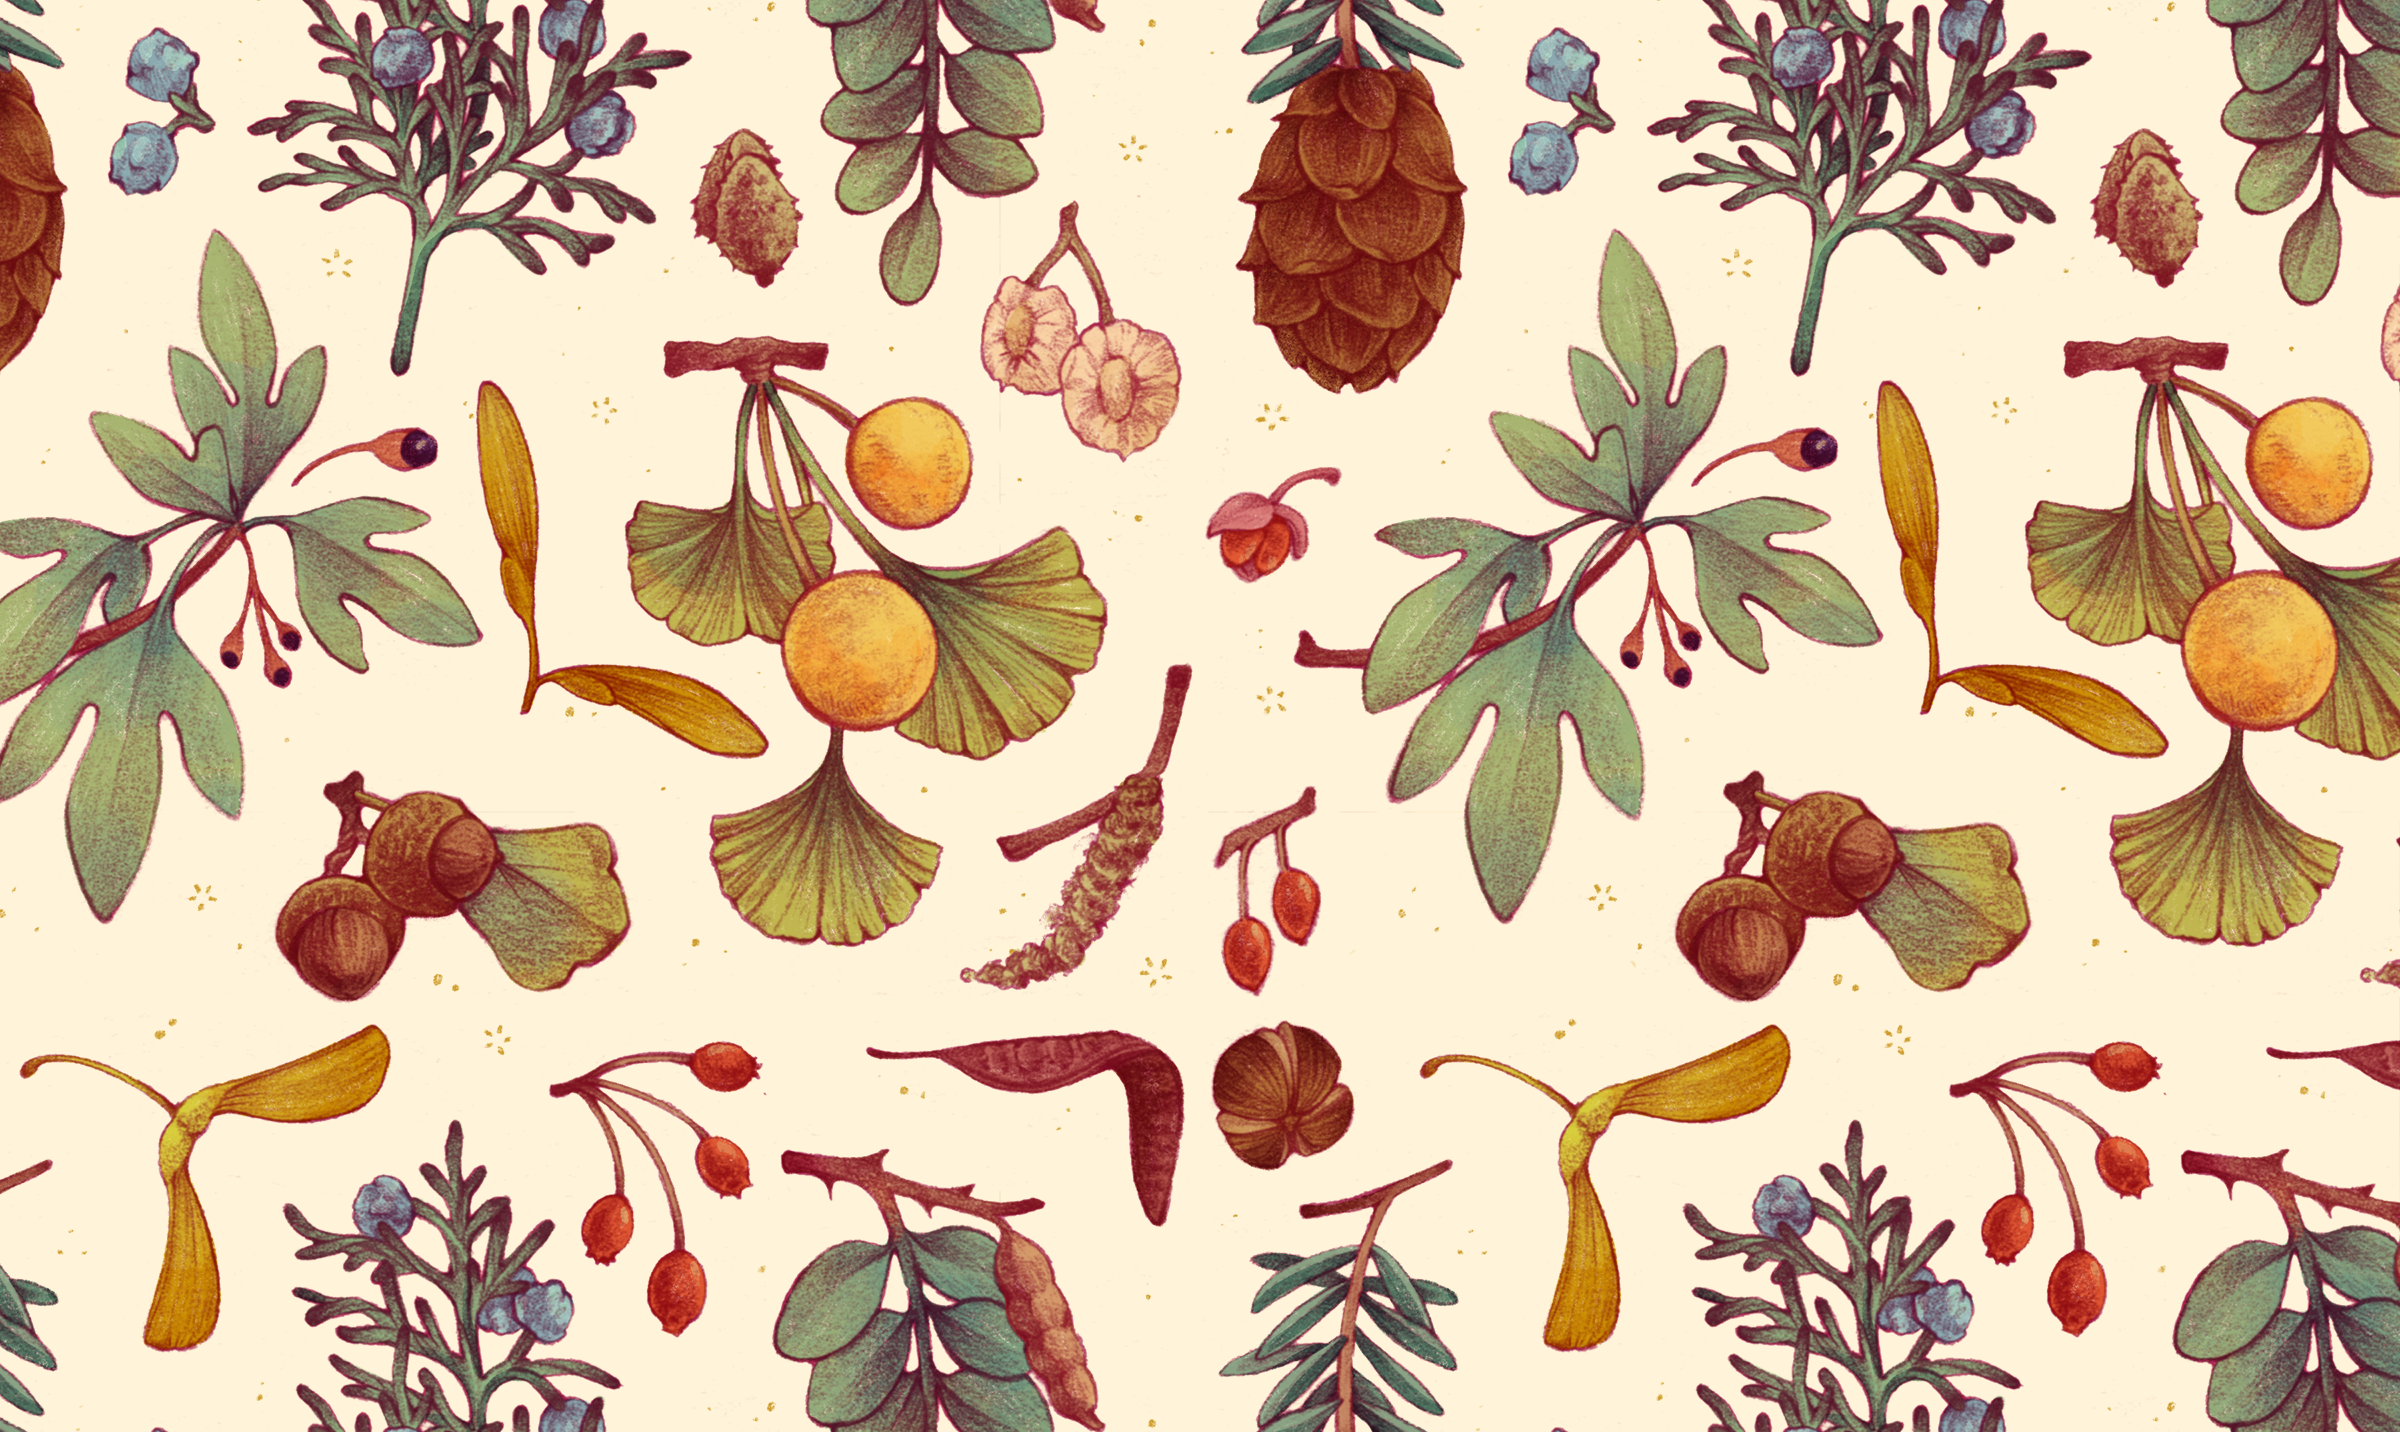 A pattern featuring various parts of North American trees, such as a sprig of juniper and its berries, ginkgo leaves and fruit, hemlock needles and cones, and the seeds of maple trees, elm trees, and beech trees.